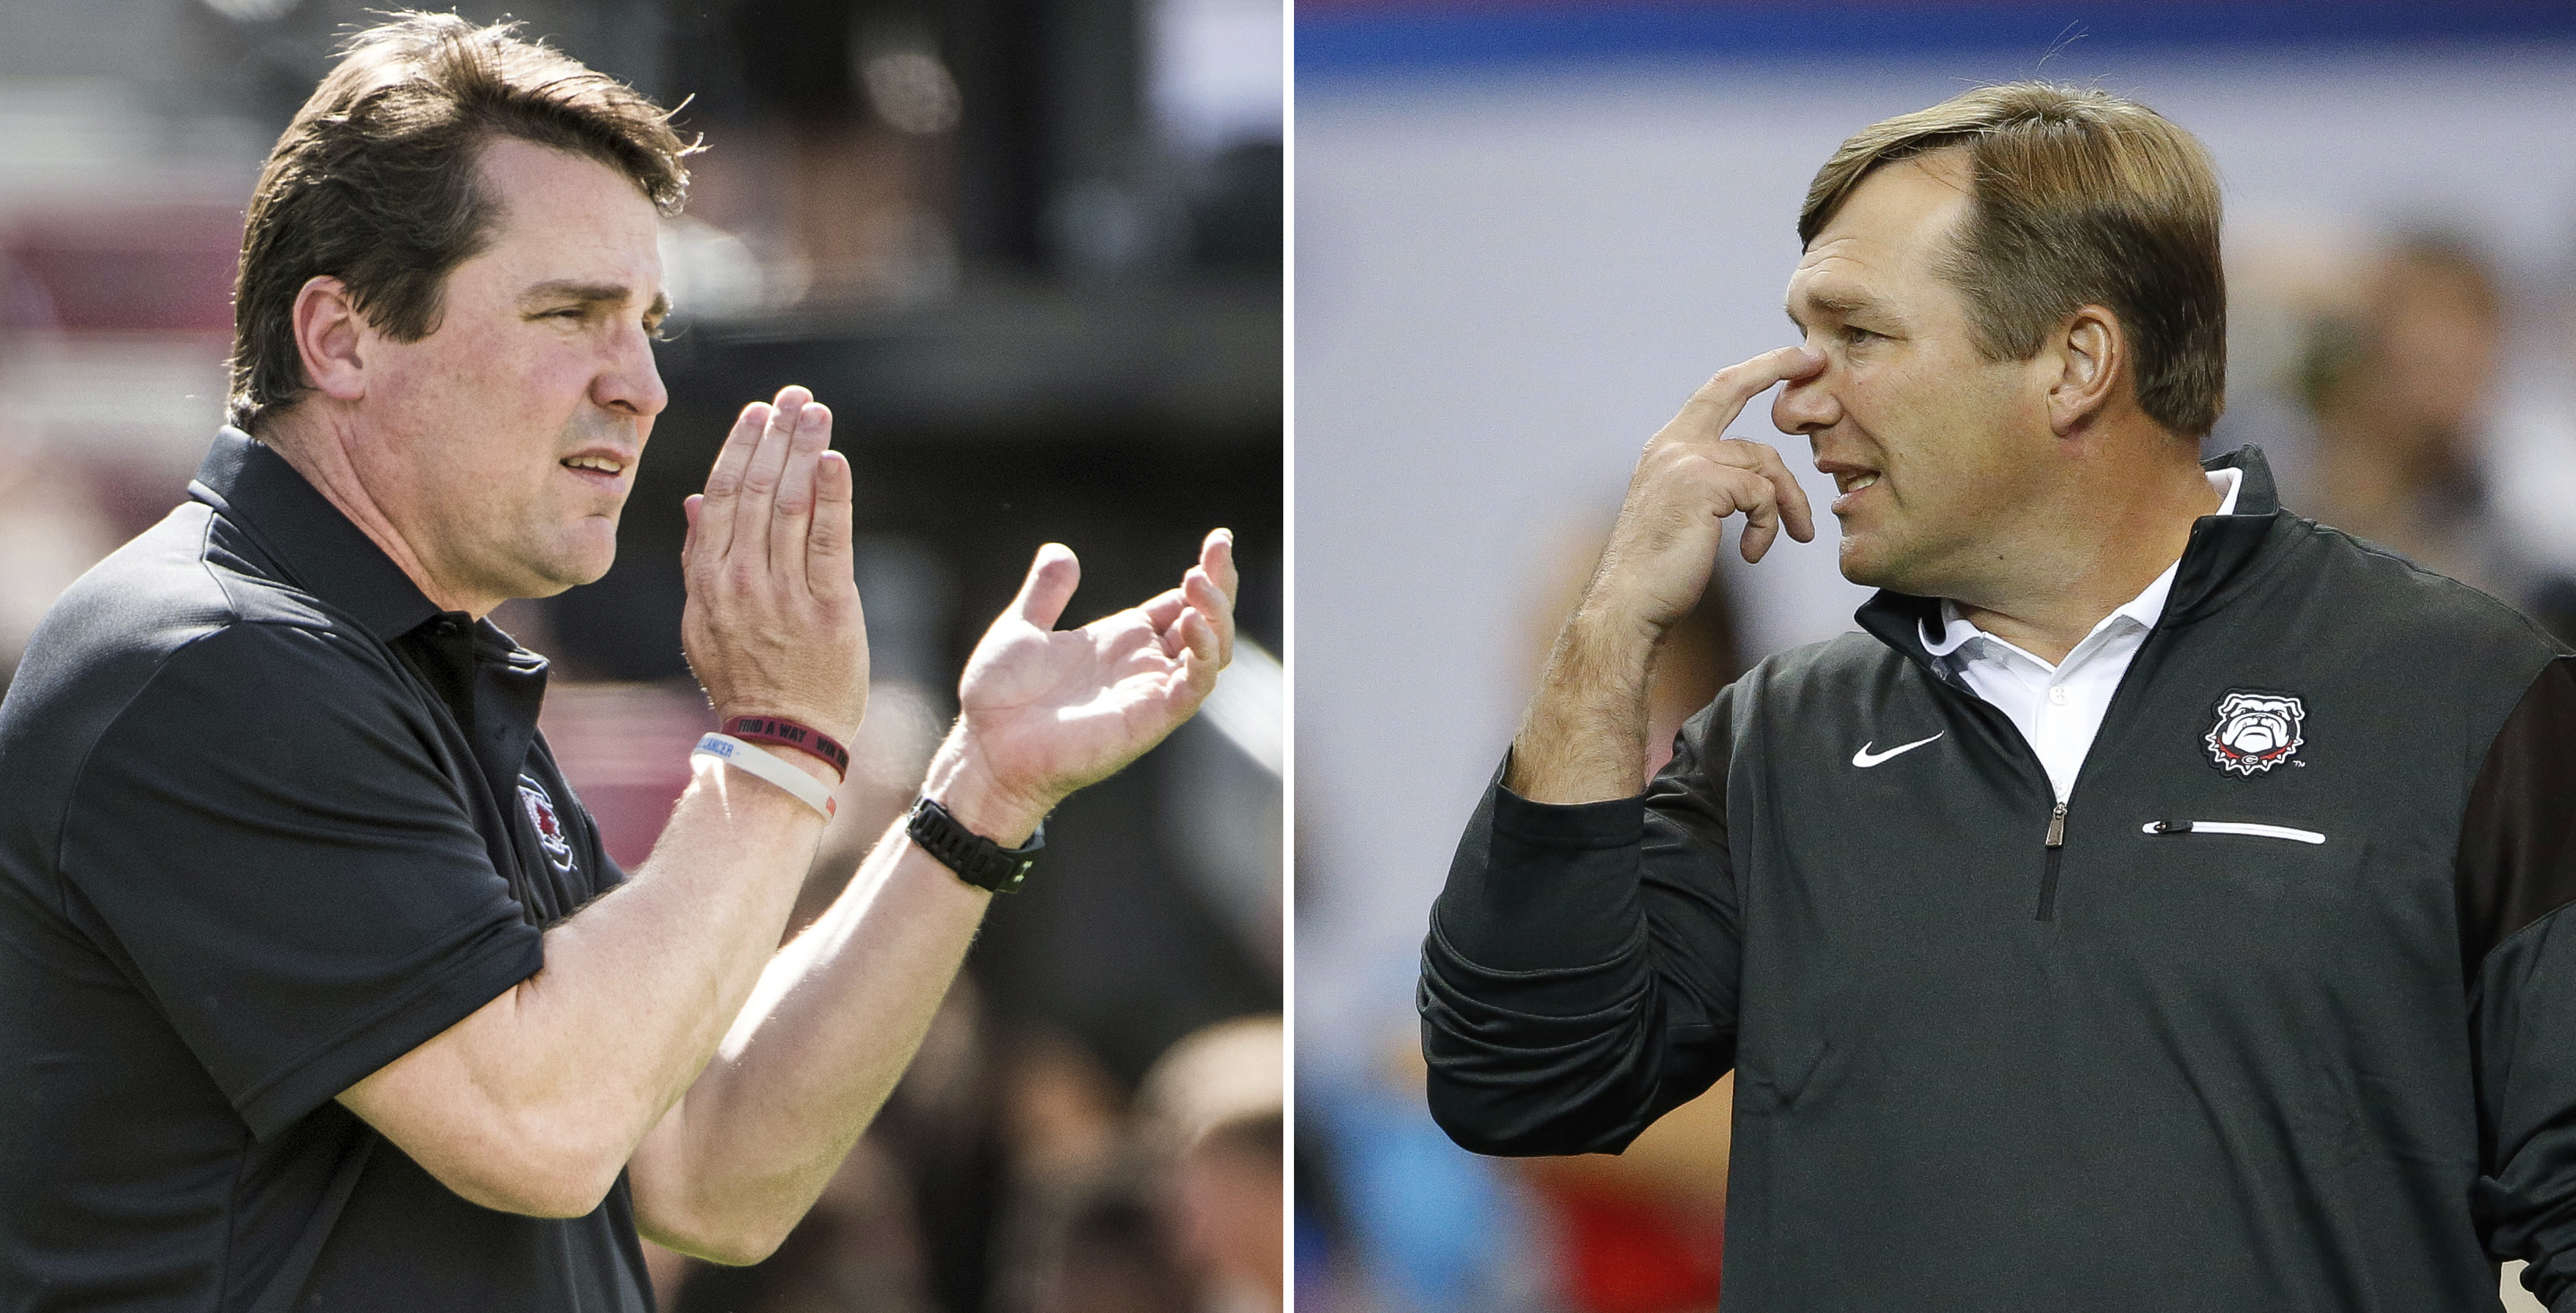 FILE - At left, in a Sept. 17, 2016, file photo, South Carolina head coach Will Muschamp communicates with players before an NCAA college football game against East Carolina, in Columbia, S.C. At right, in a Sept. 3, 2016, file photo, Georgia head coach K